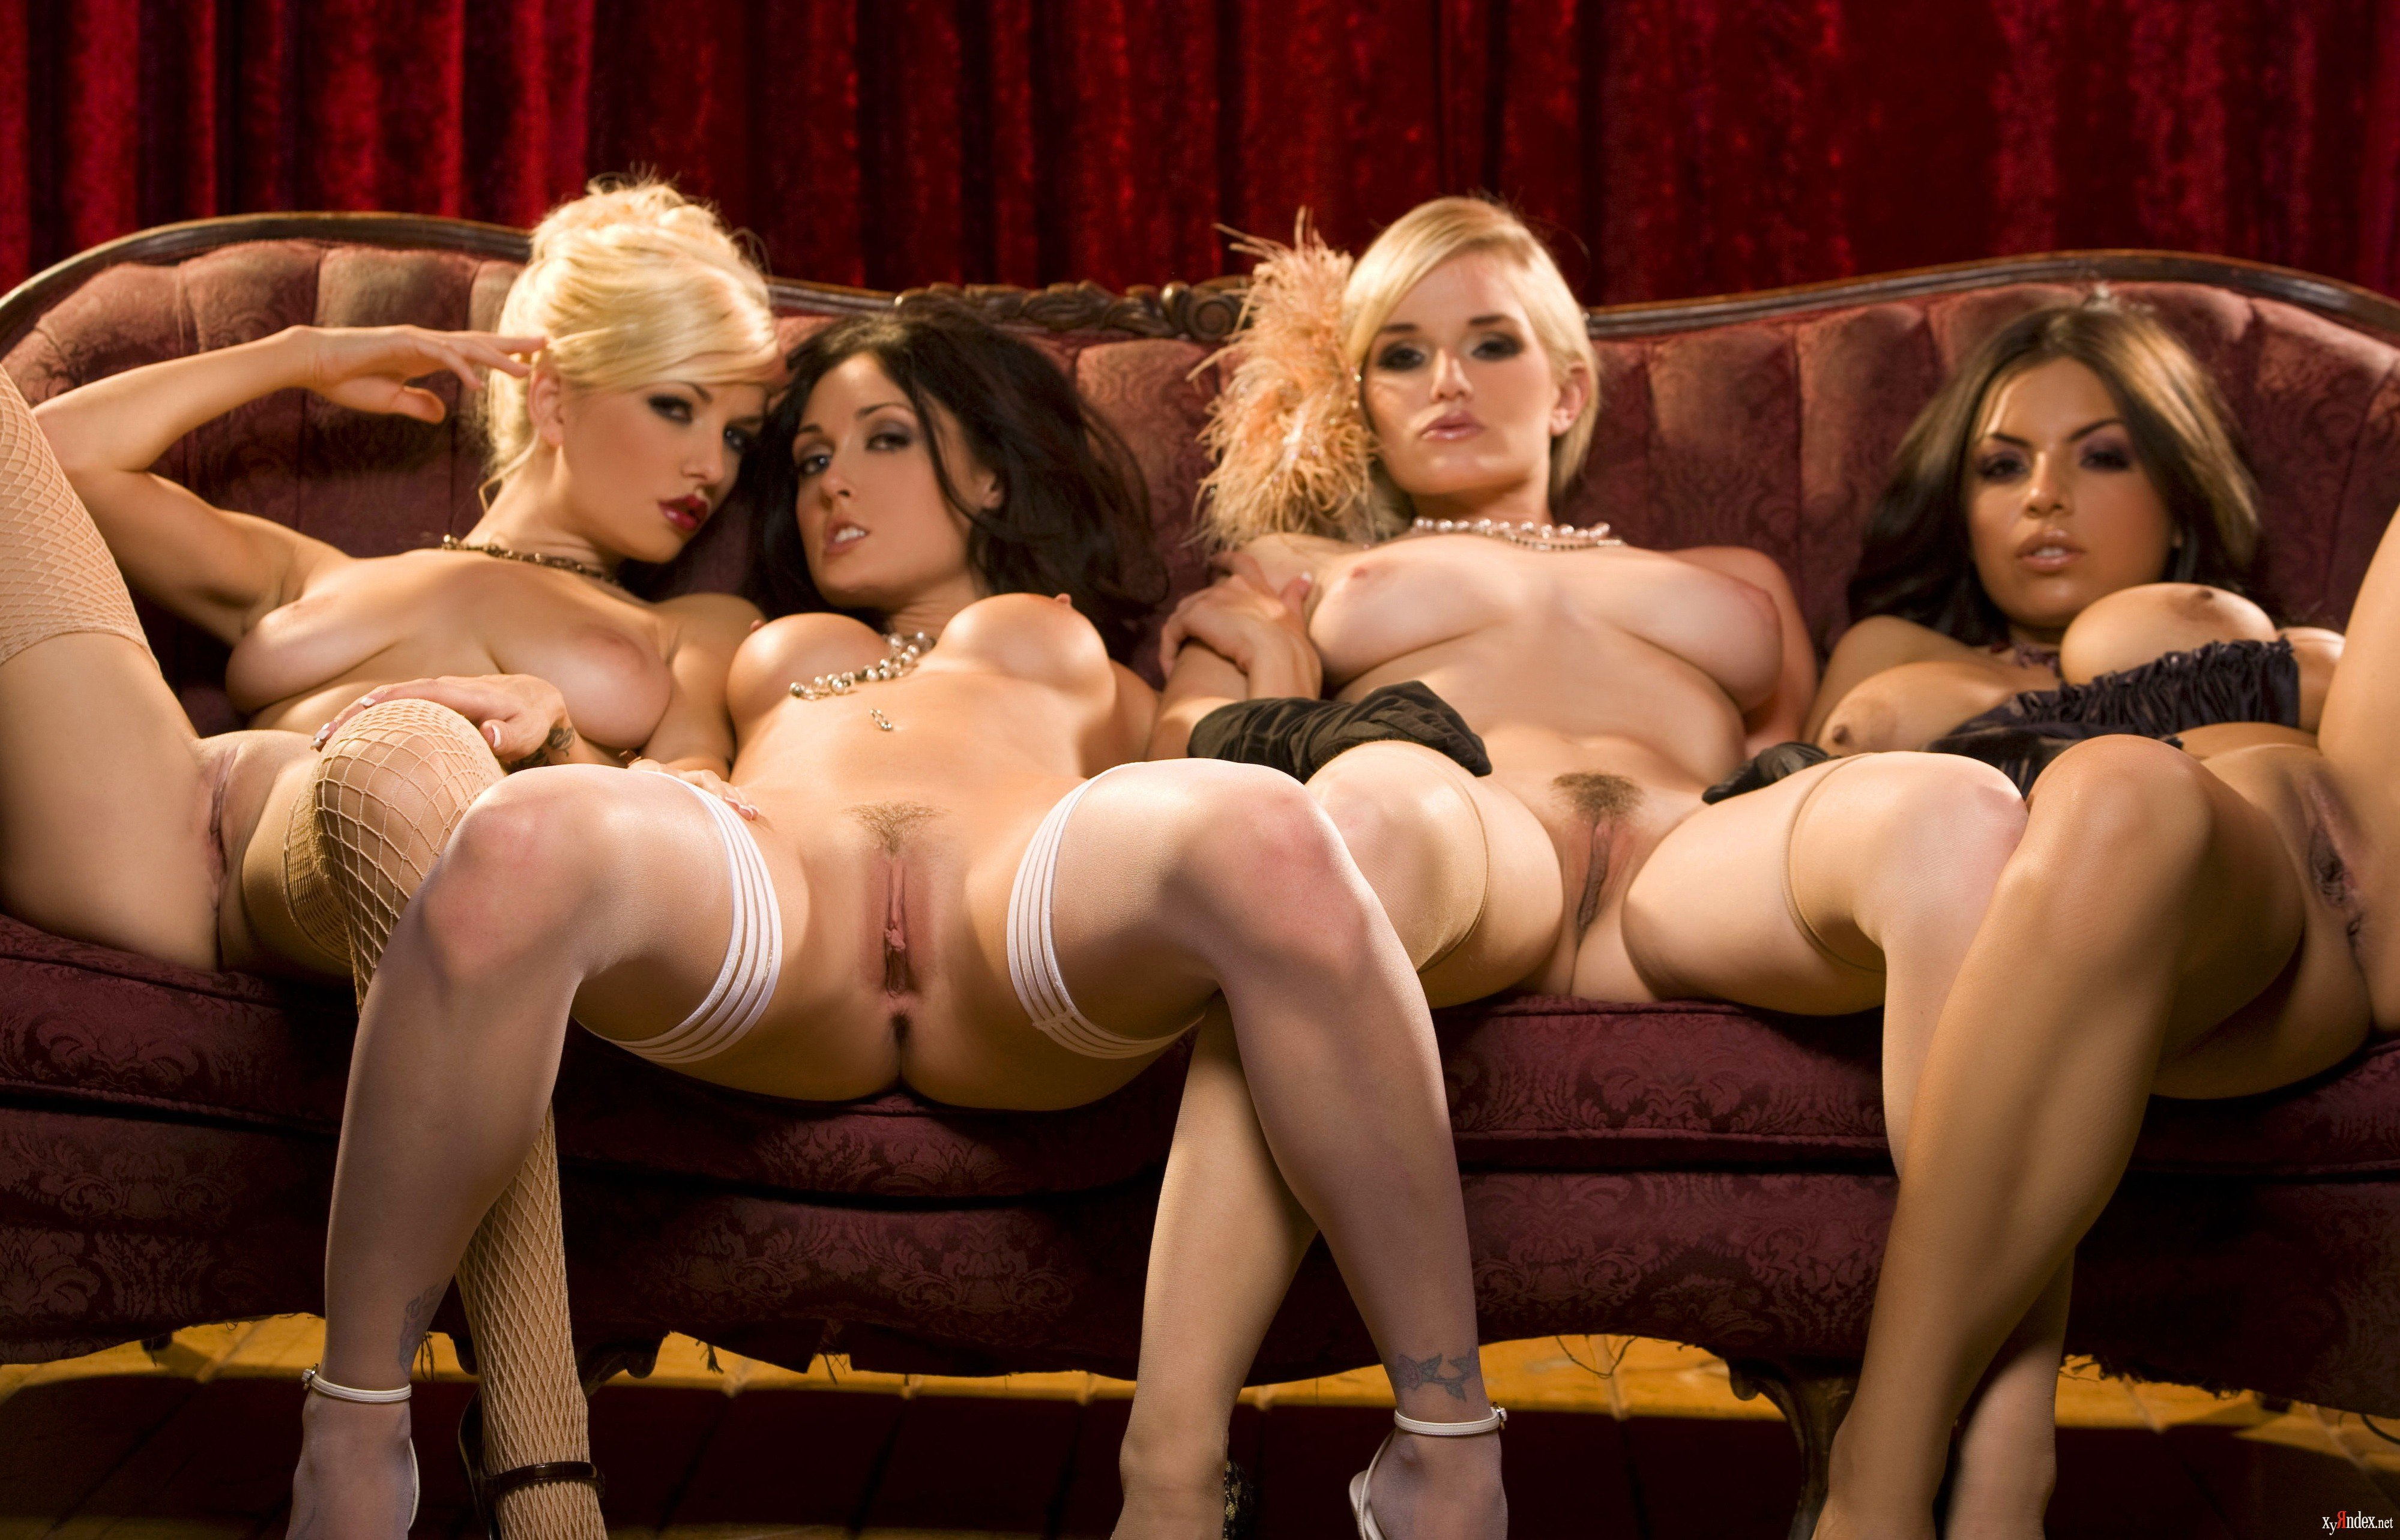 Burlesque Striptease High Resolution Stock Photography And Images